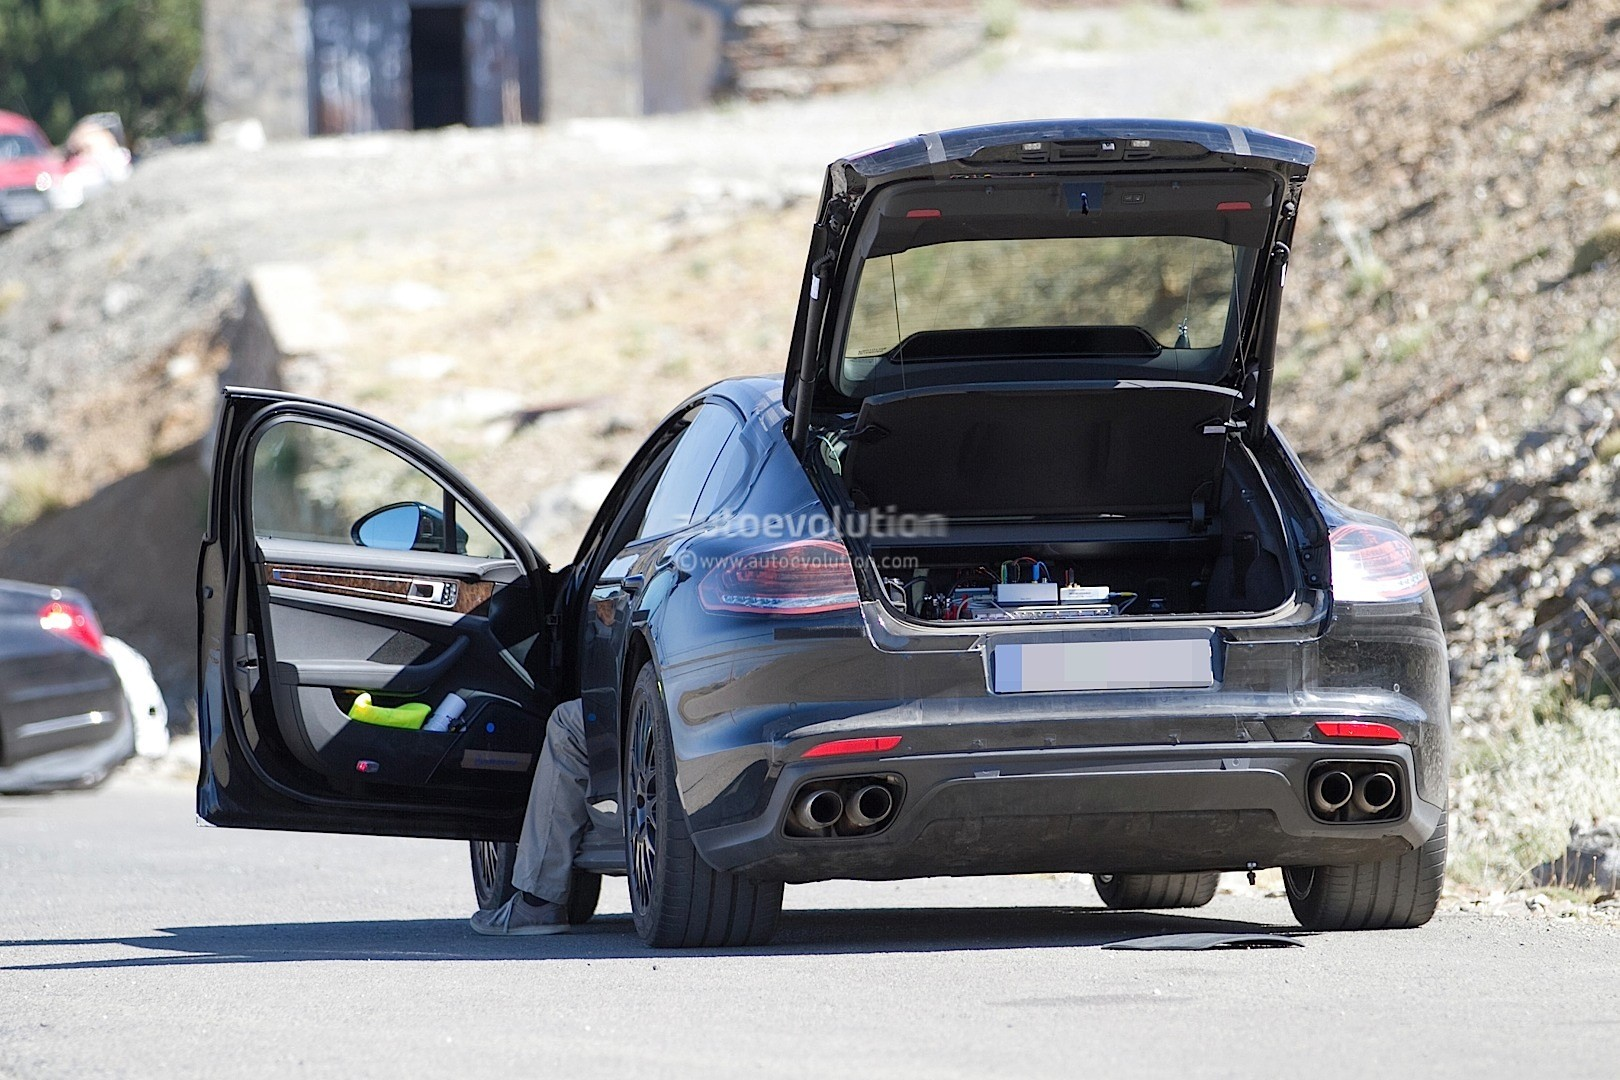 2016 Porsche Panamera Gts >> 2017 Porsche Panamera Interior Partially Revealed in Latest Spyshots - autoevolution